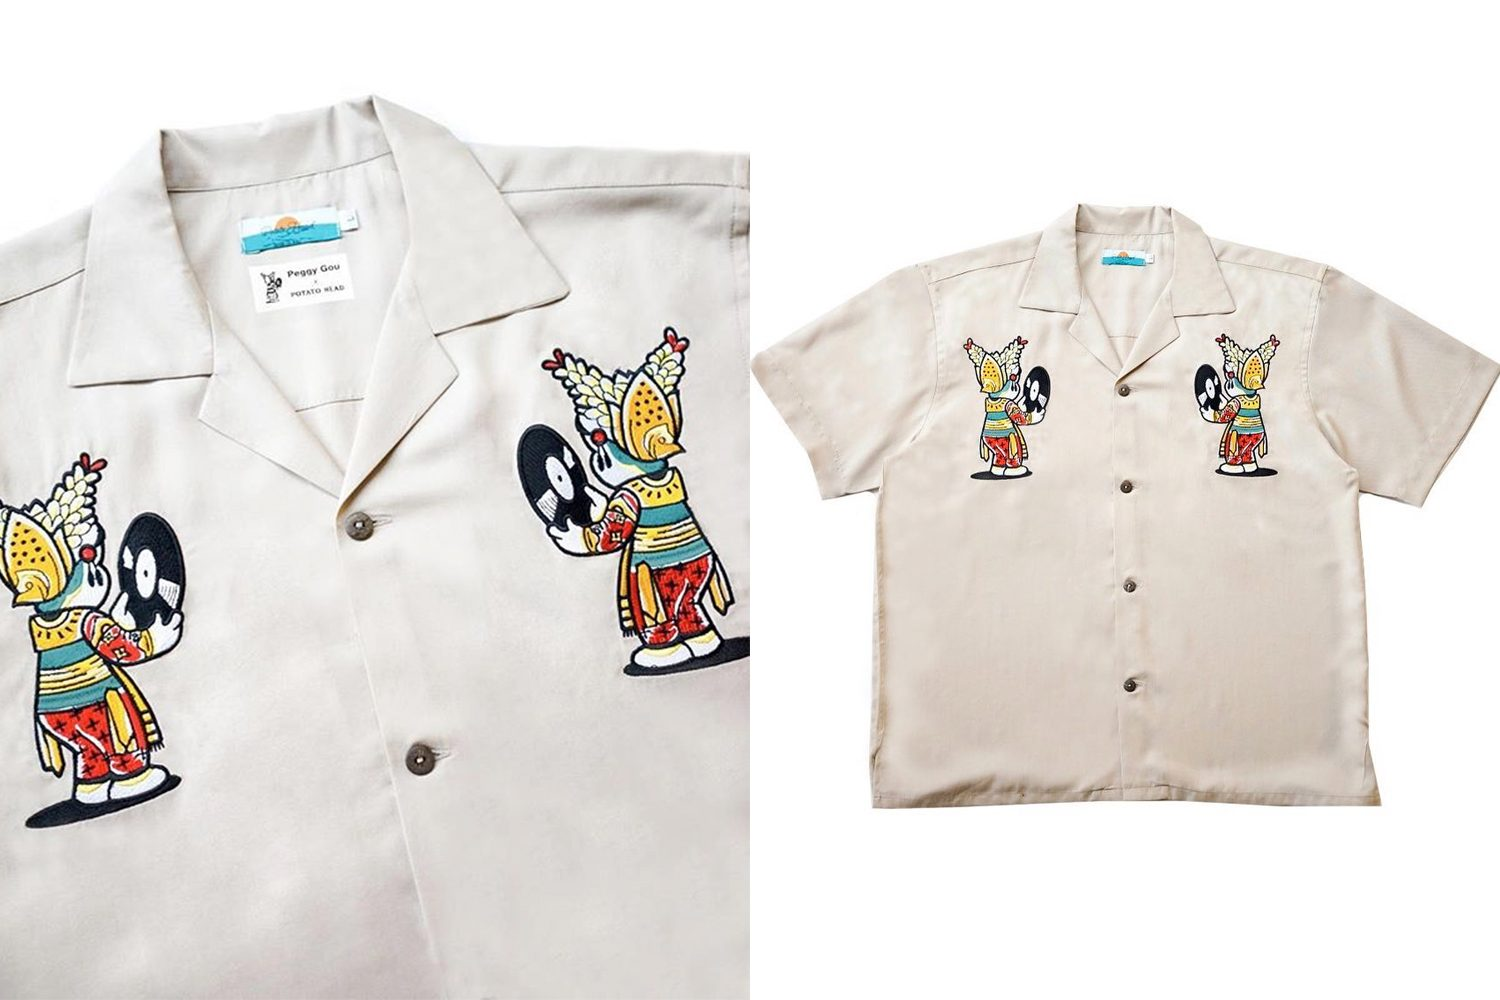 POTATO HEAD BALI X PEGGY GOU HAWAIIAN SHIRT 2